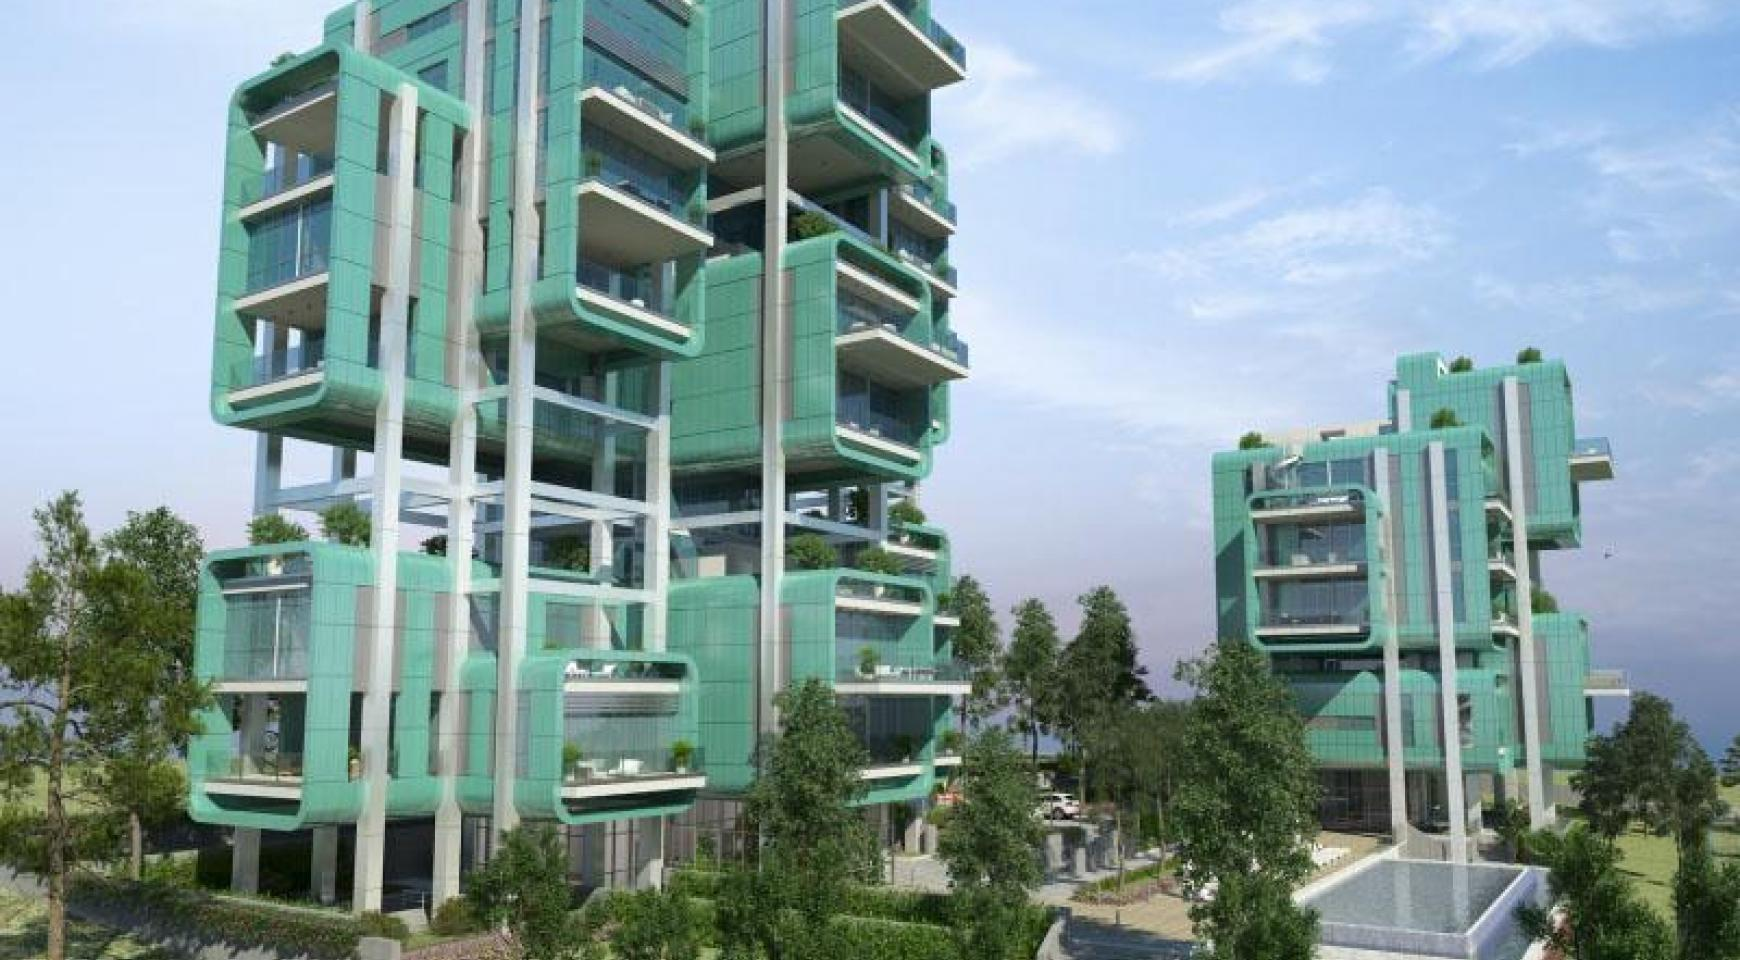 Elite 3 Bedroom Apartment with Roof Garden within a New Complex - 27